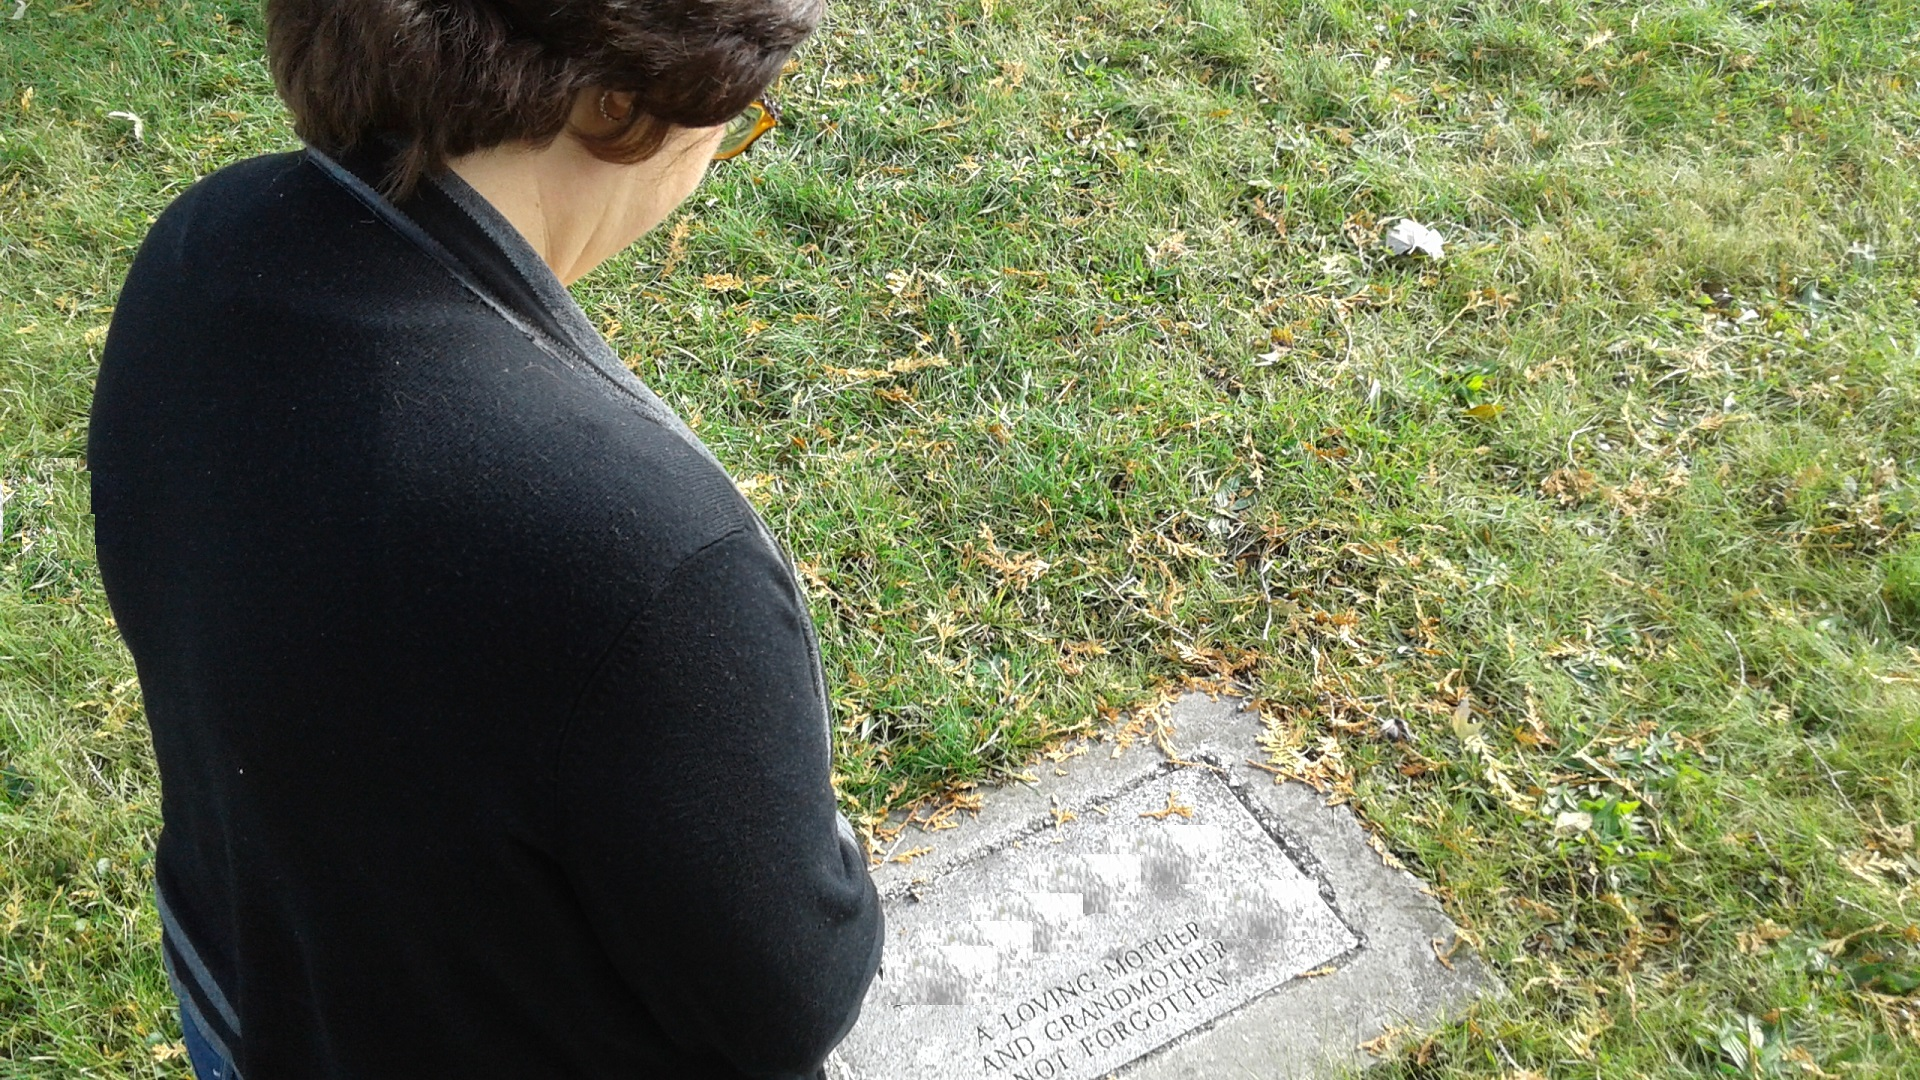 Paying respects to her birth mother, Beth Steury has many questions, yet is at peace with the information she has uncovered with DNA tests and genealogical research. Photo courtesy of Beth Steury.